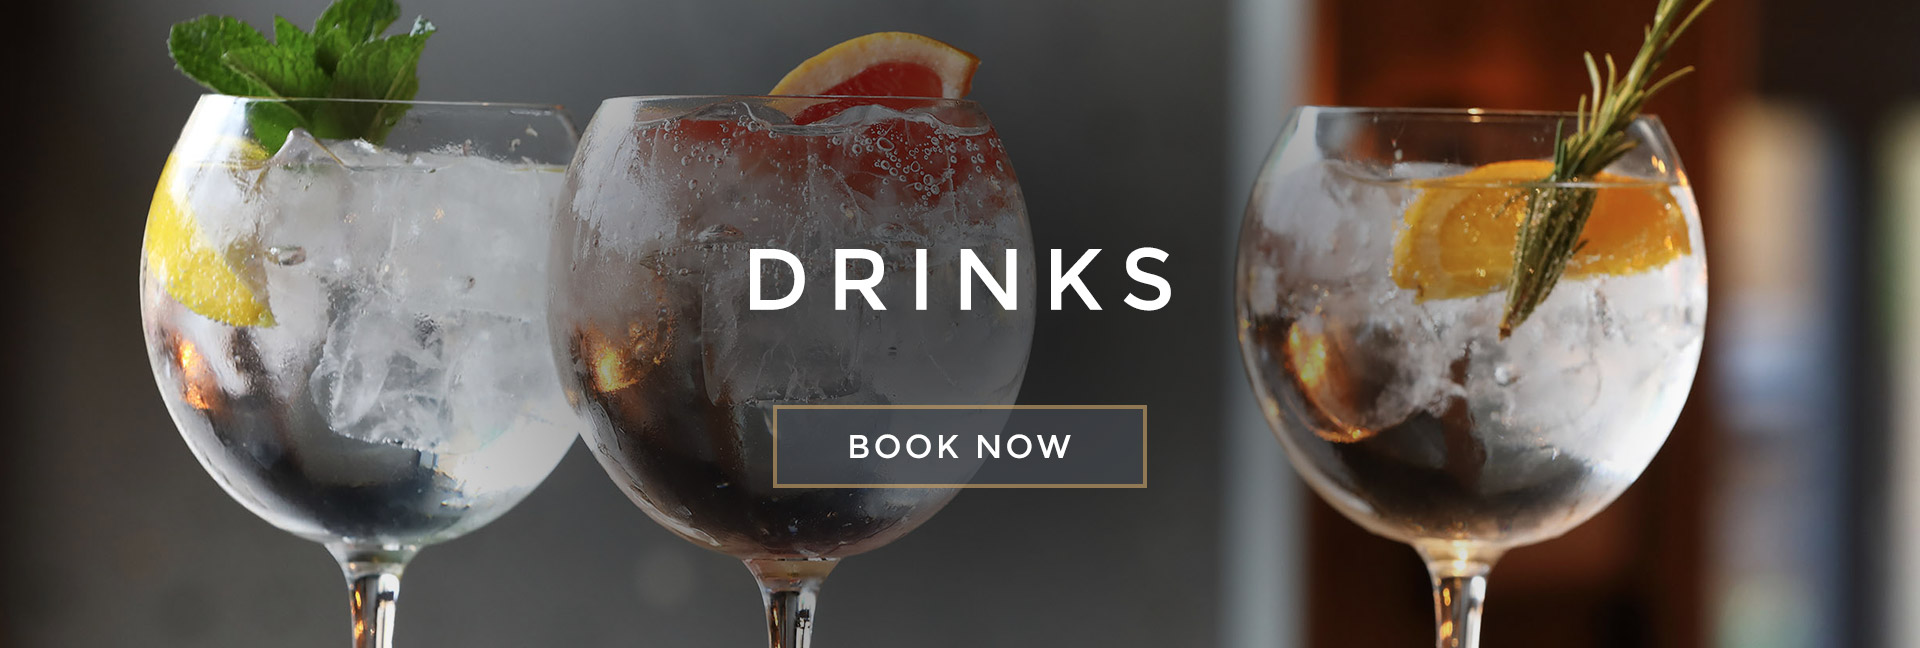 Drinks at All Bar One Brighton - Book your table